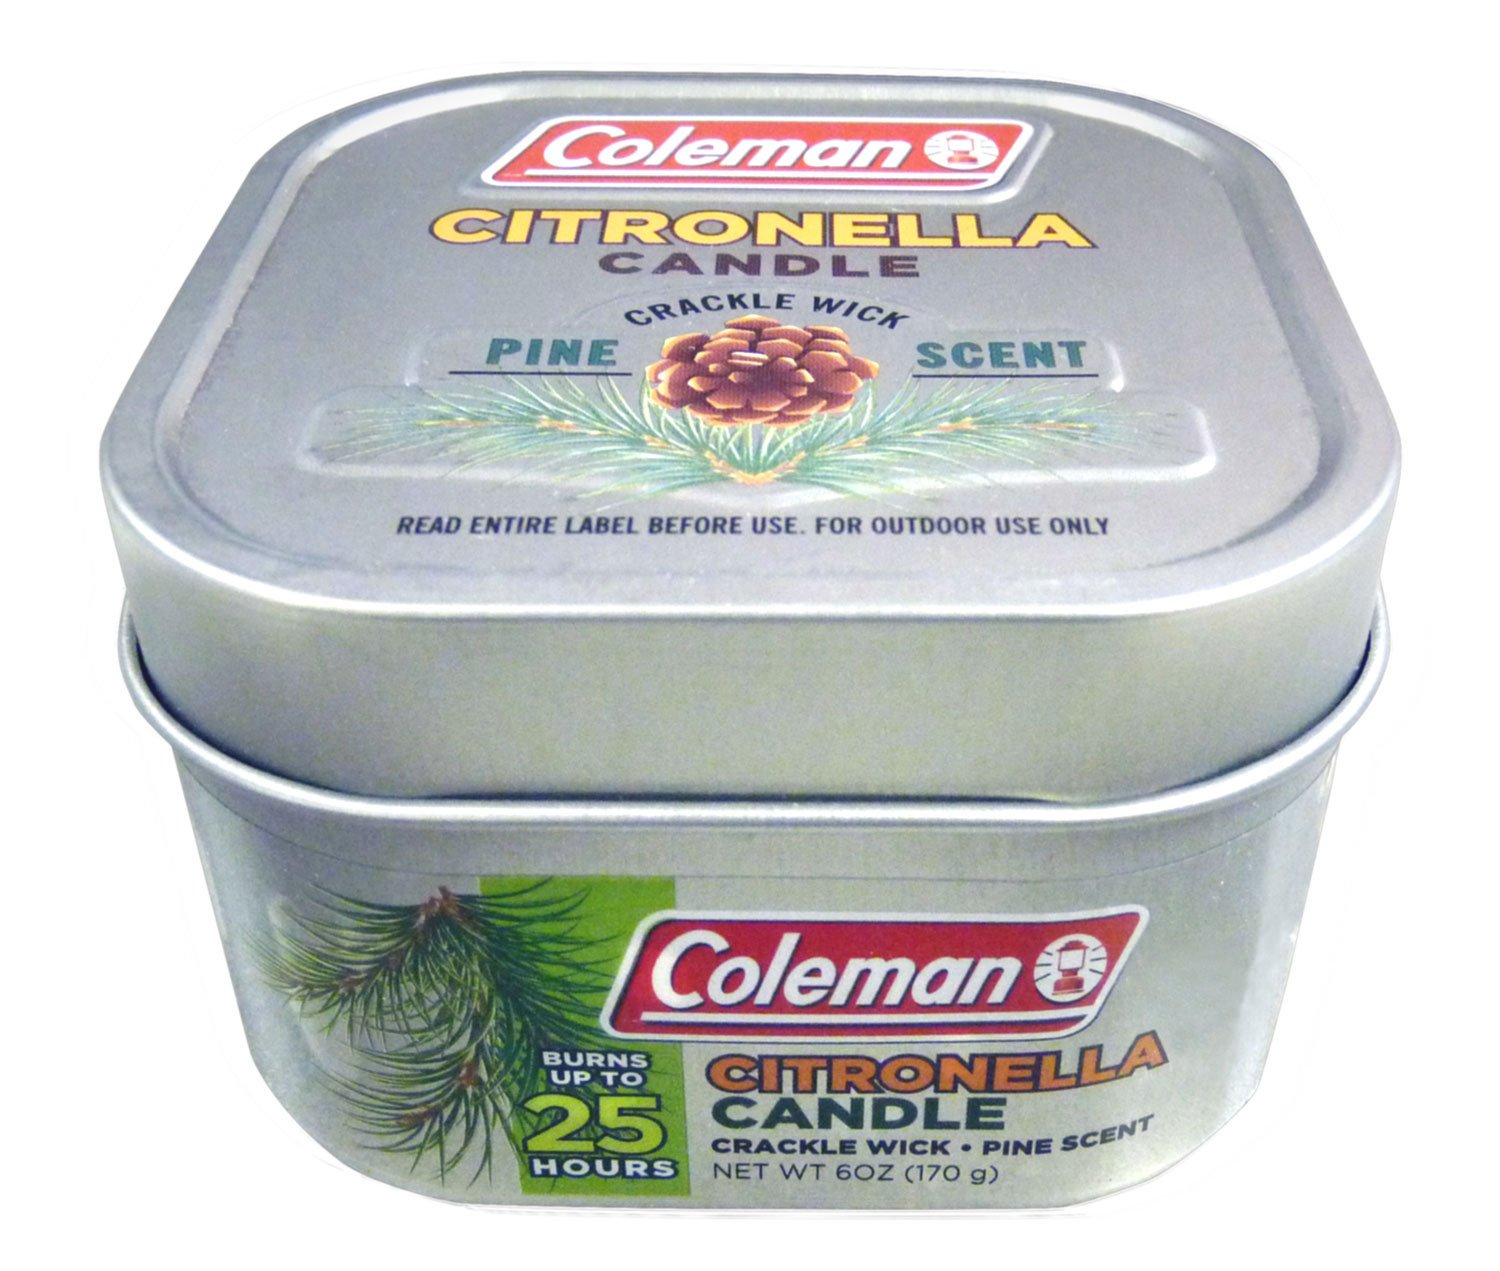 Coleman Scented Citronella Candle, Pine Scent with Wooden Crackle Wick